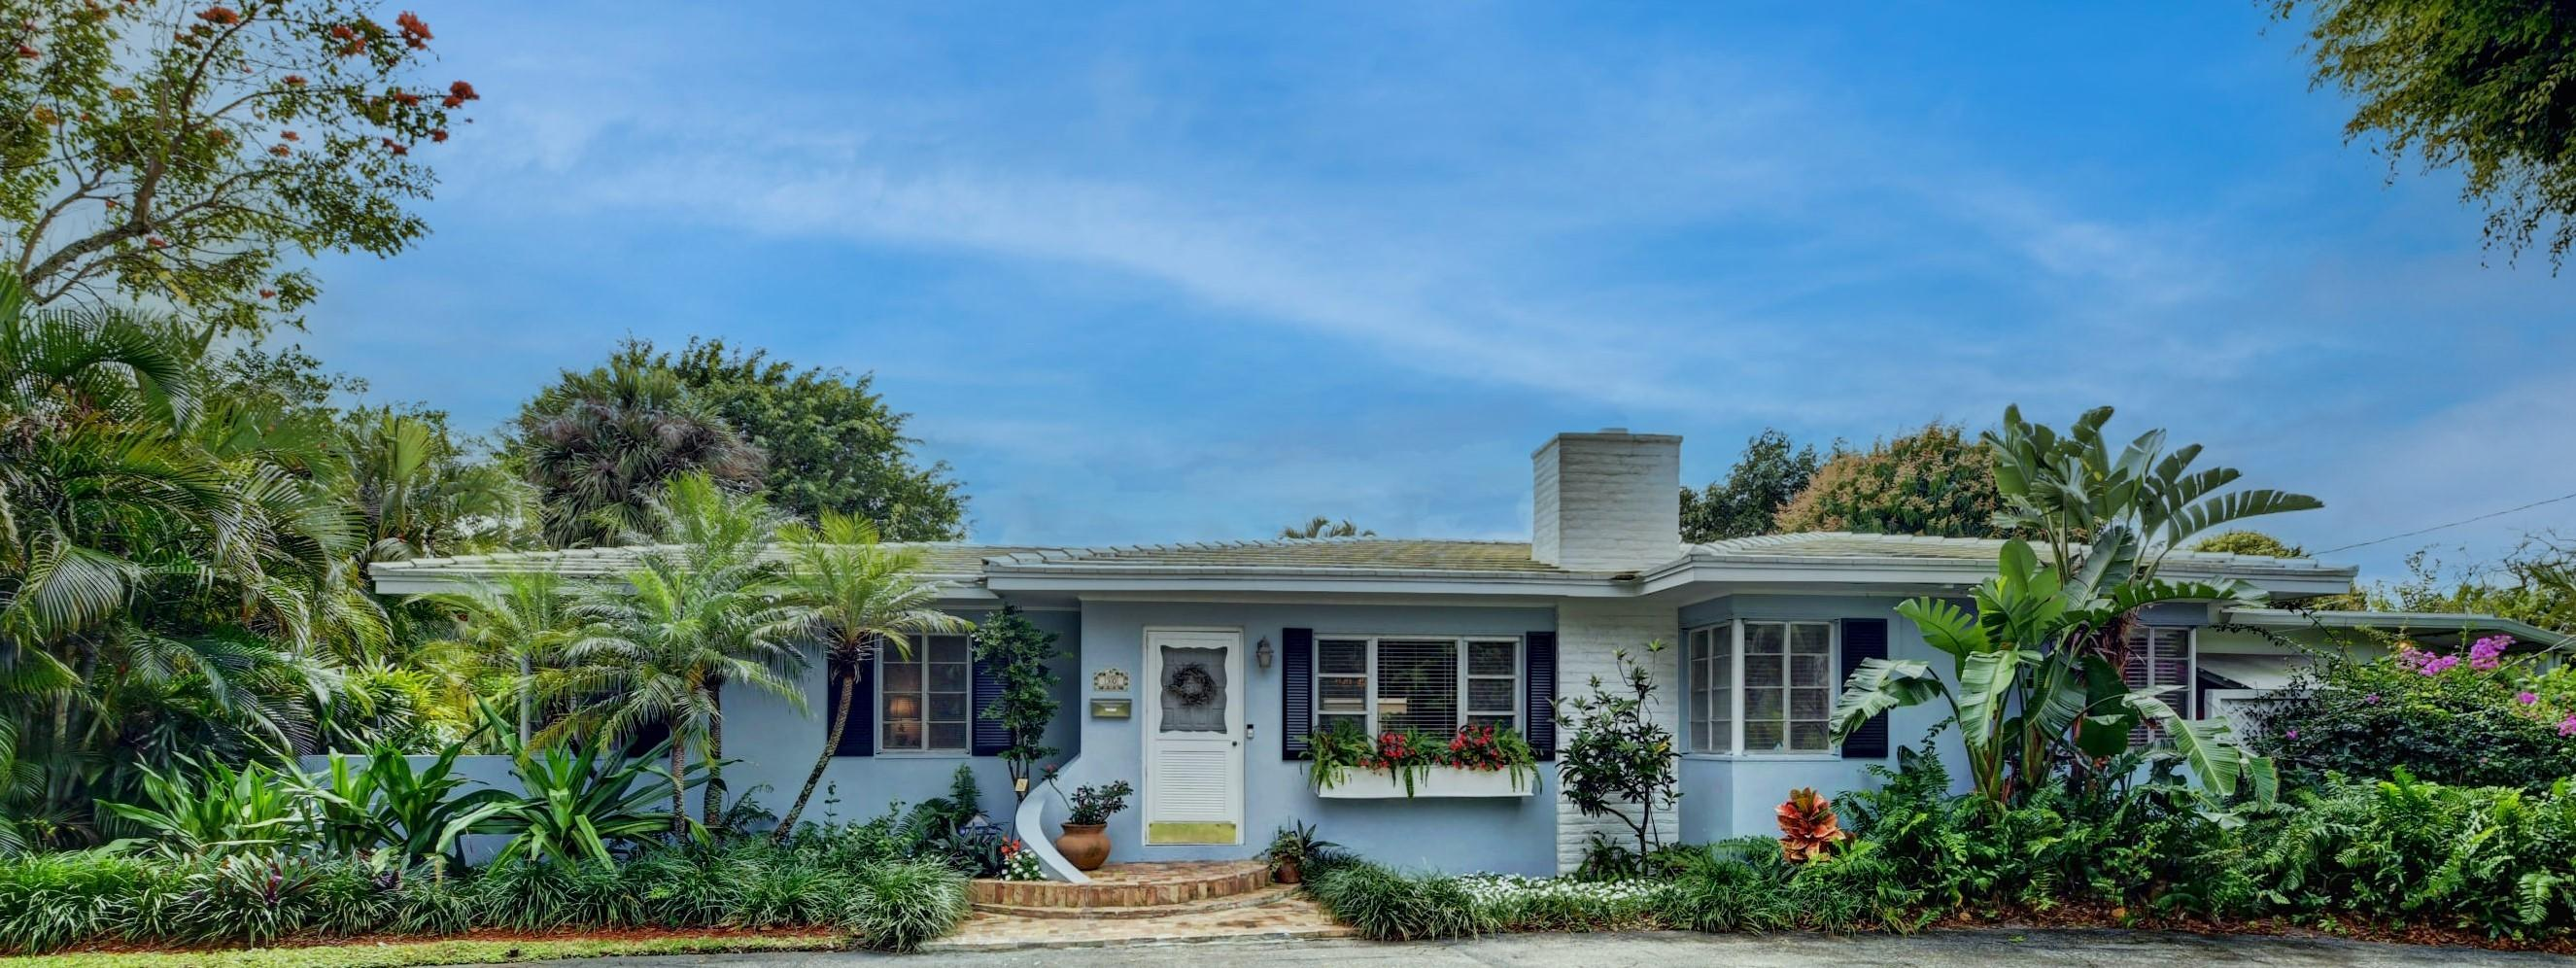 30 NW 11th Street  For Sale 10694612, FL